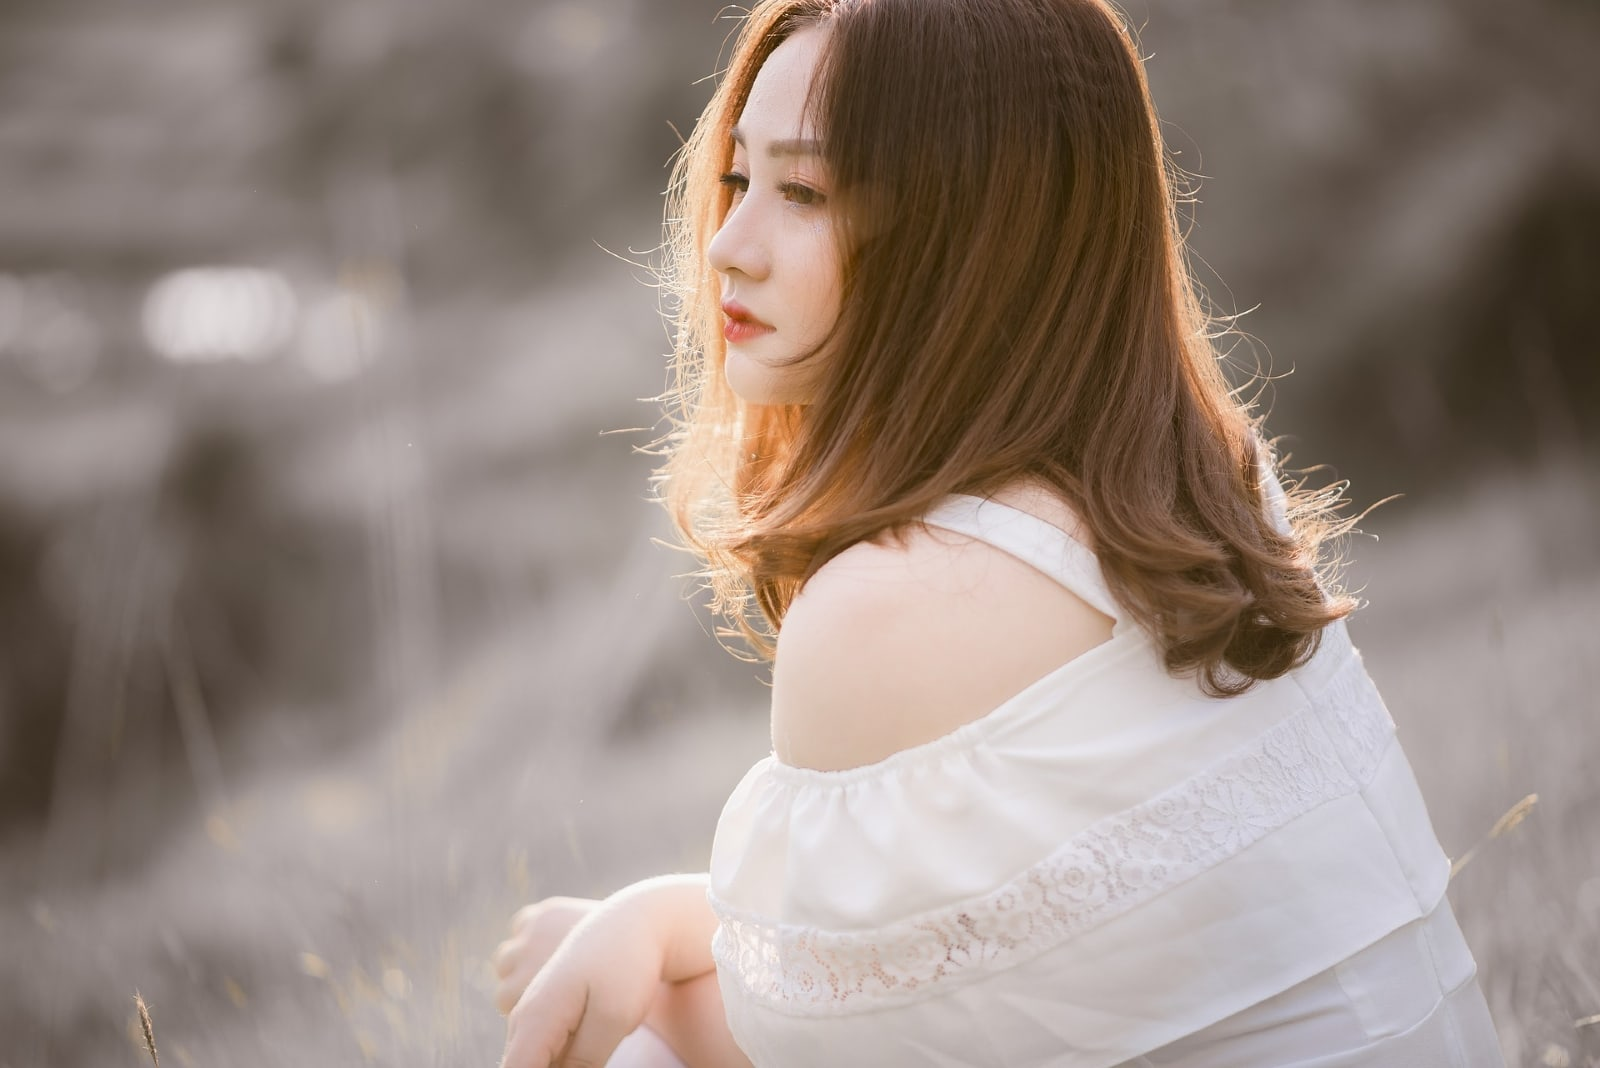 sad woman in white top sitting outdoor